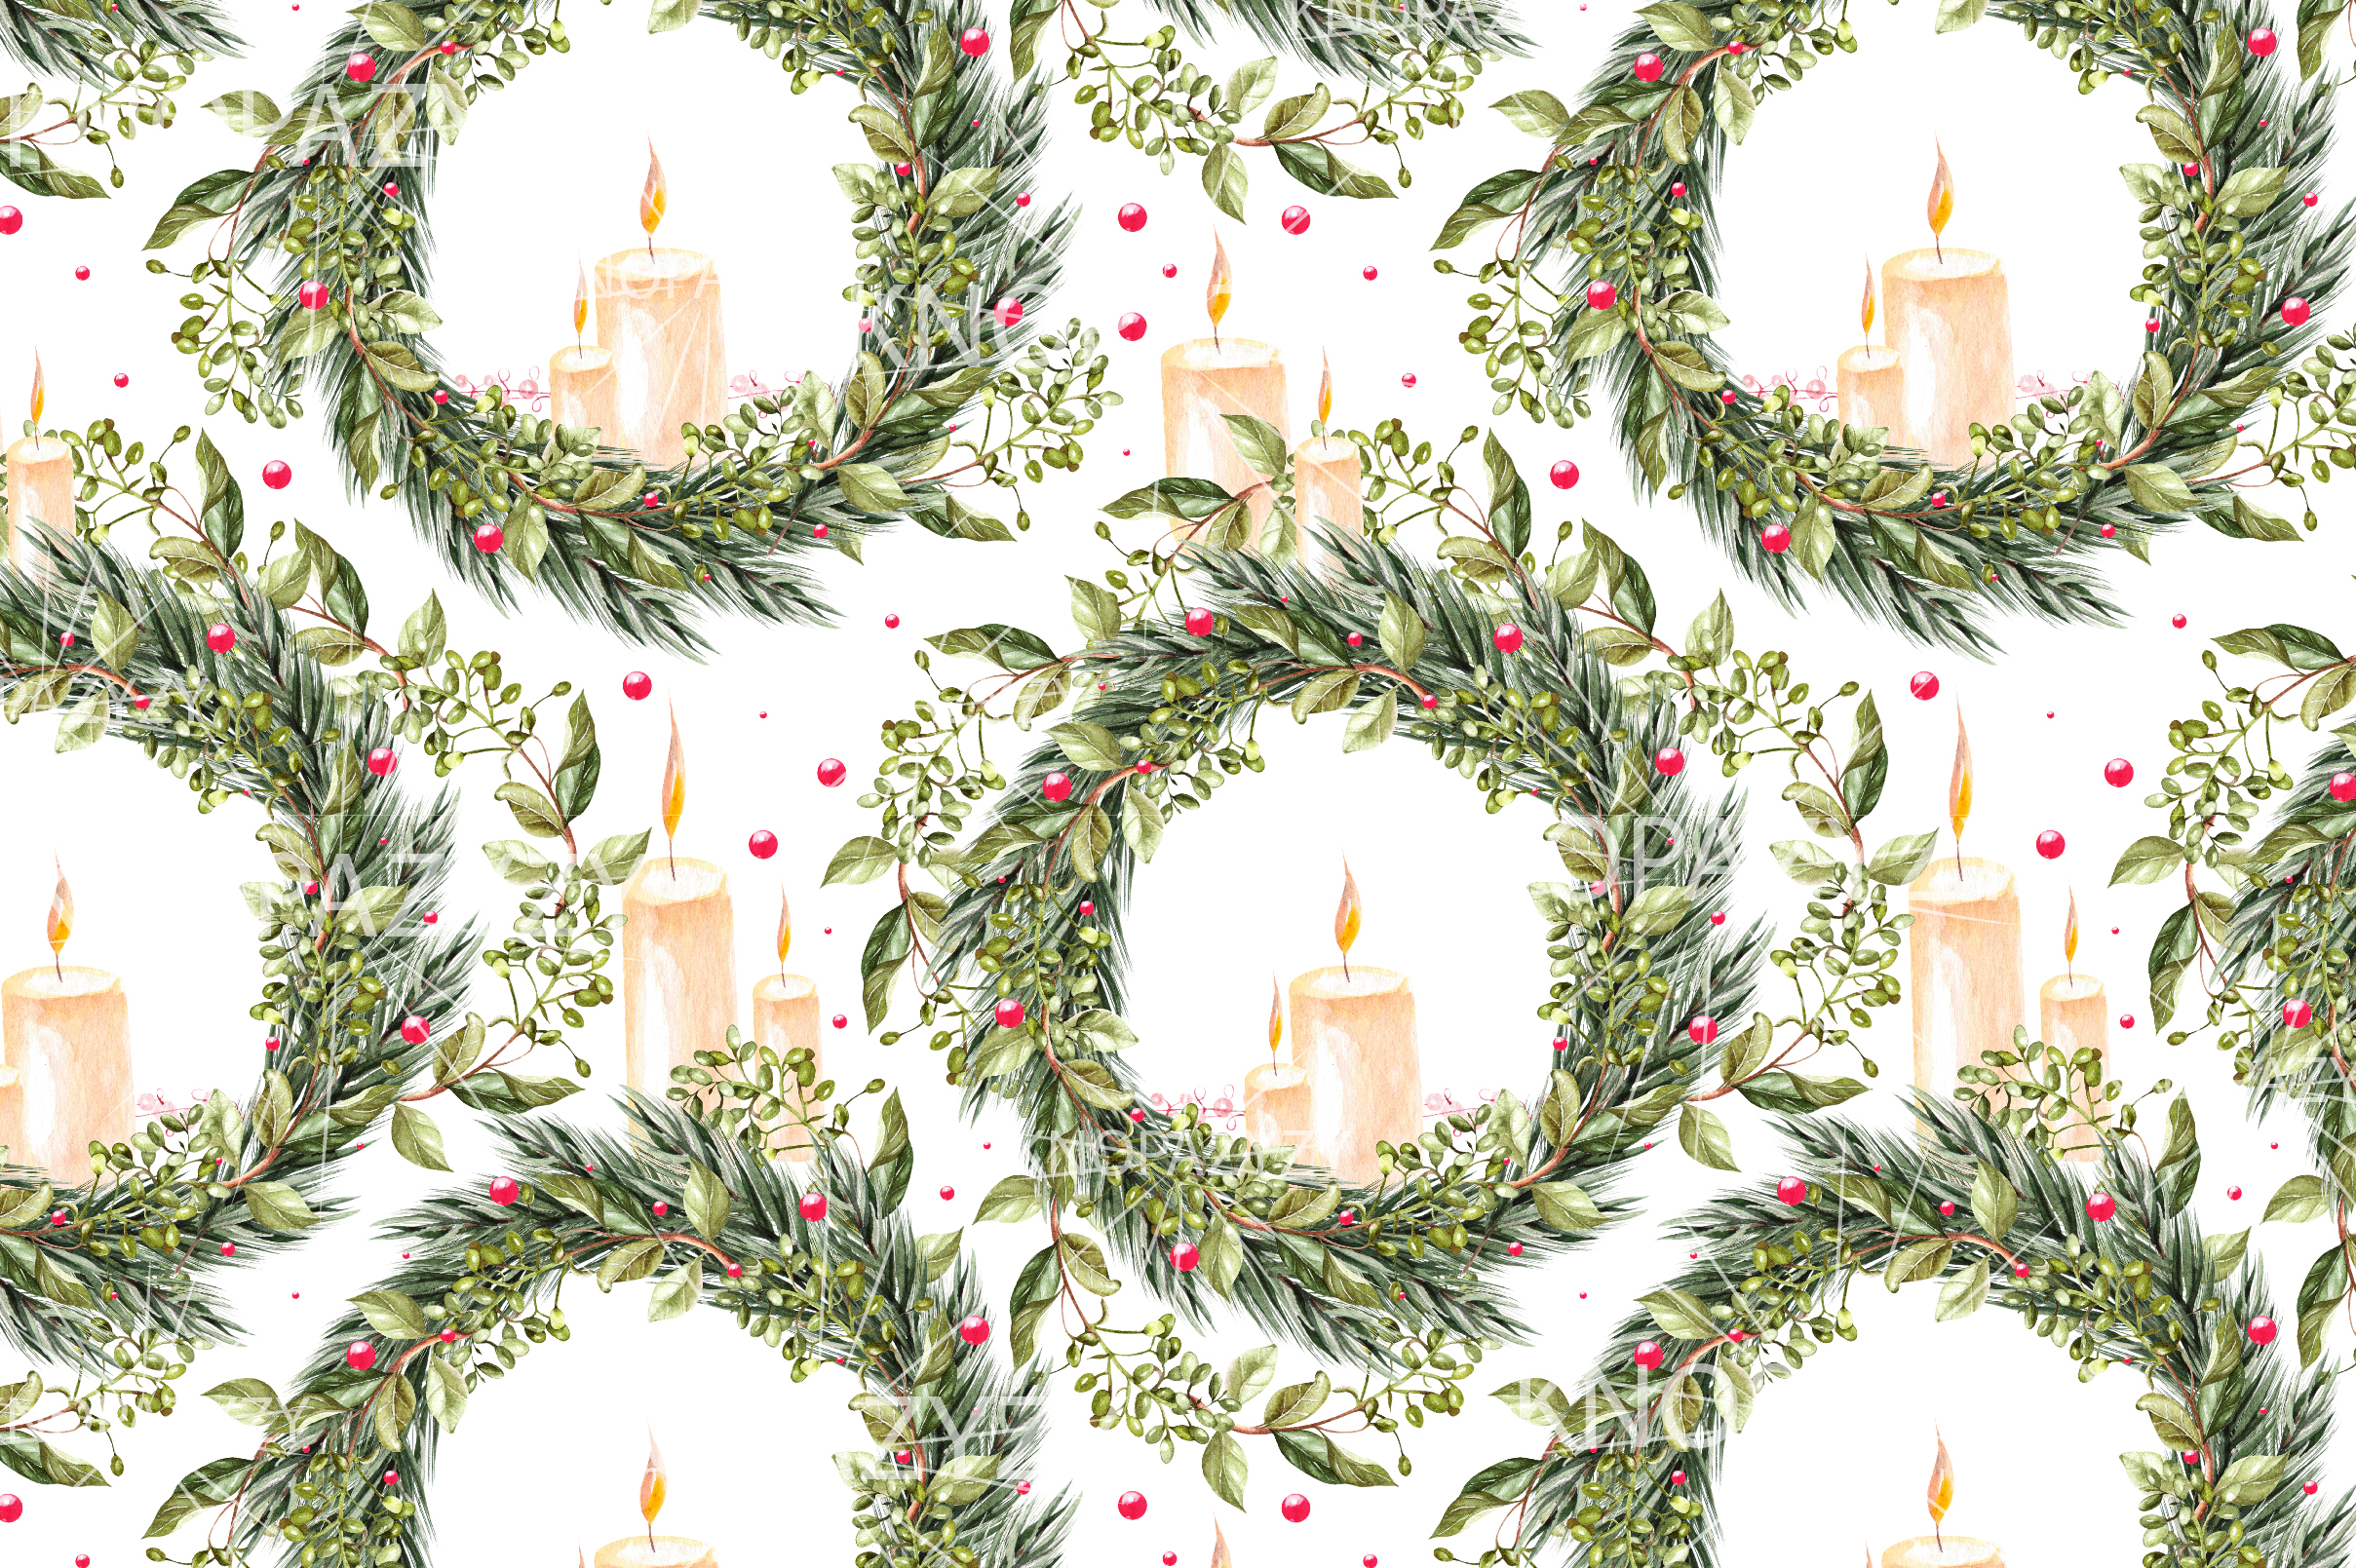 Hand Drawn Watercolor Christmas 13 Patterns example image 12